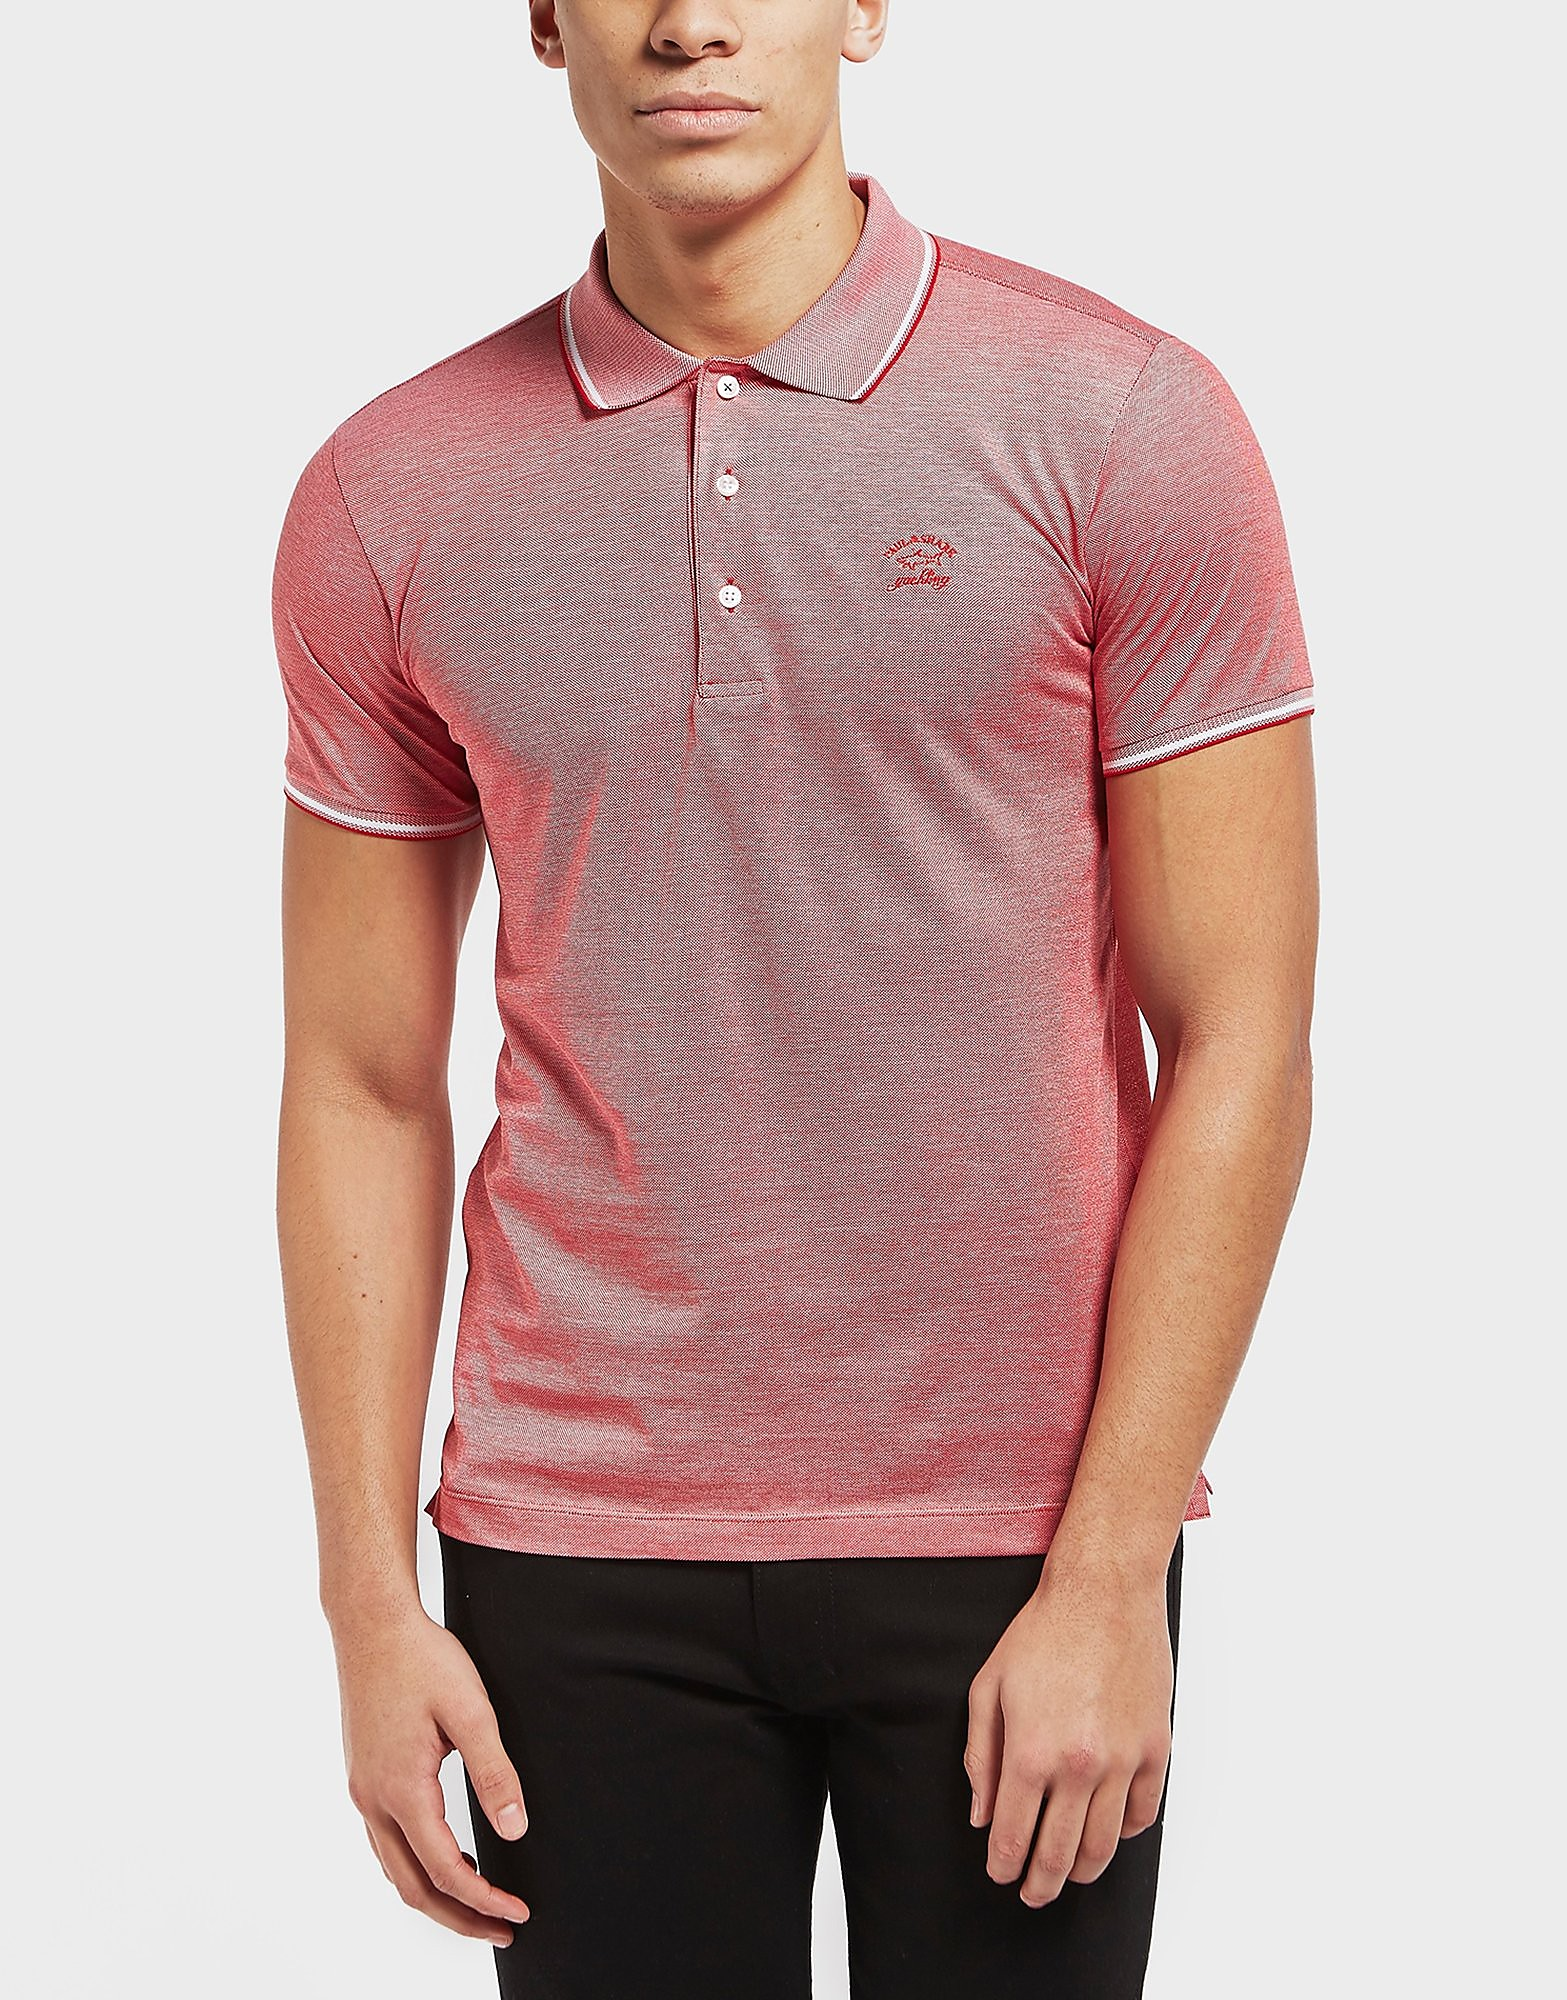 Paul and Shark Birdseye Pique Short Sleeve Polo Shirt